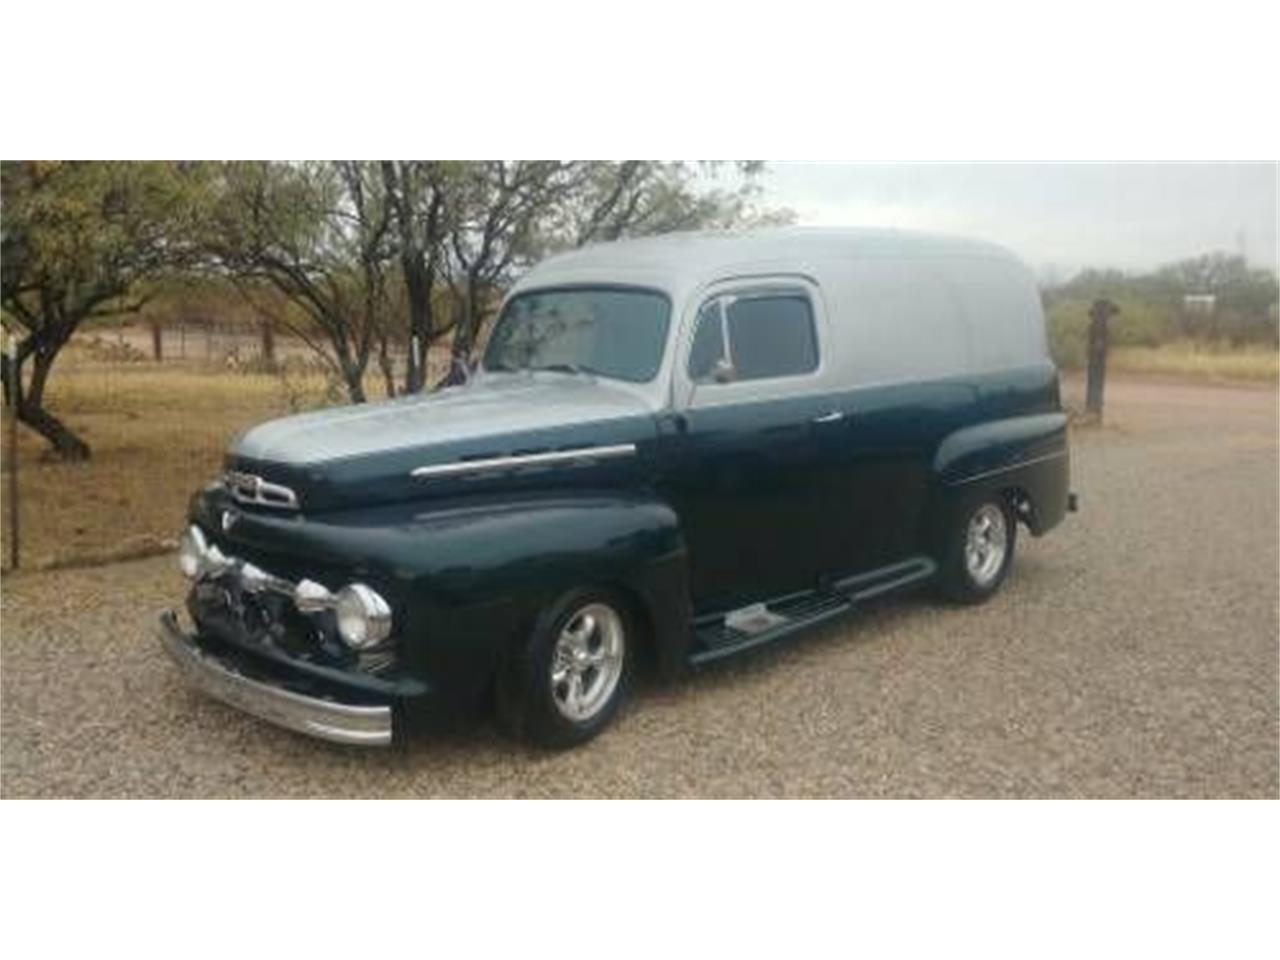 For Sale: 1951 Ford Panel Truck in Cadillac, Michigan